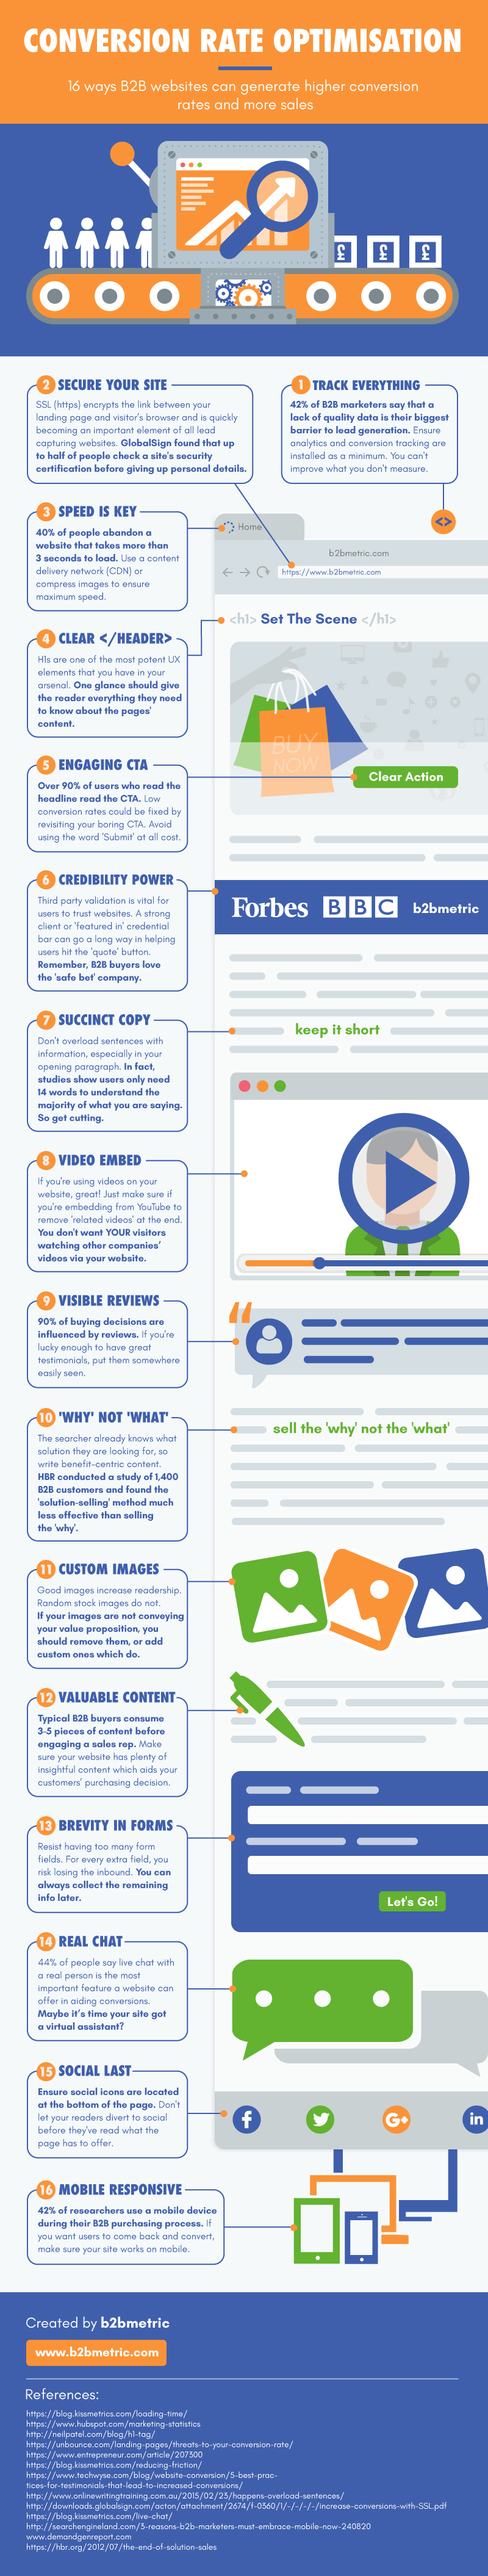 Conversion rate optimization tips infographic